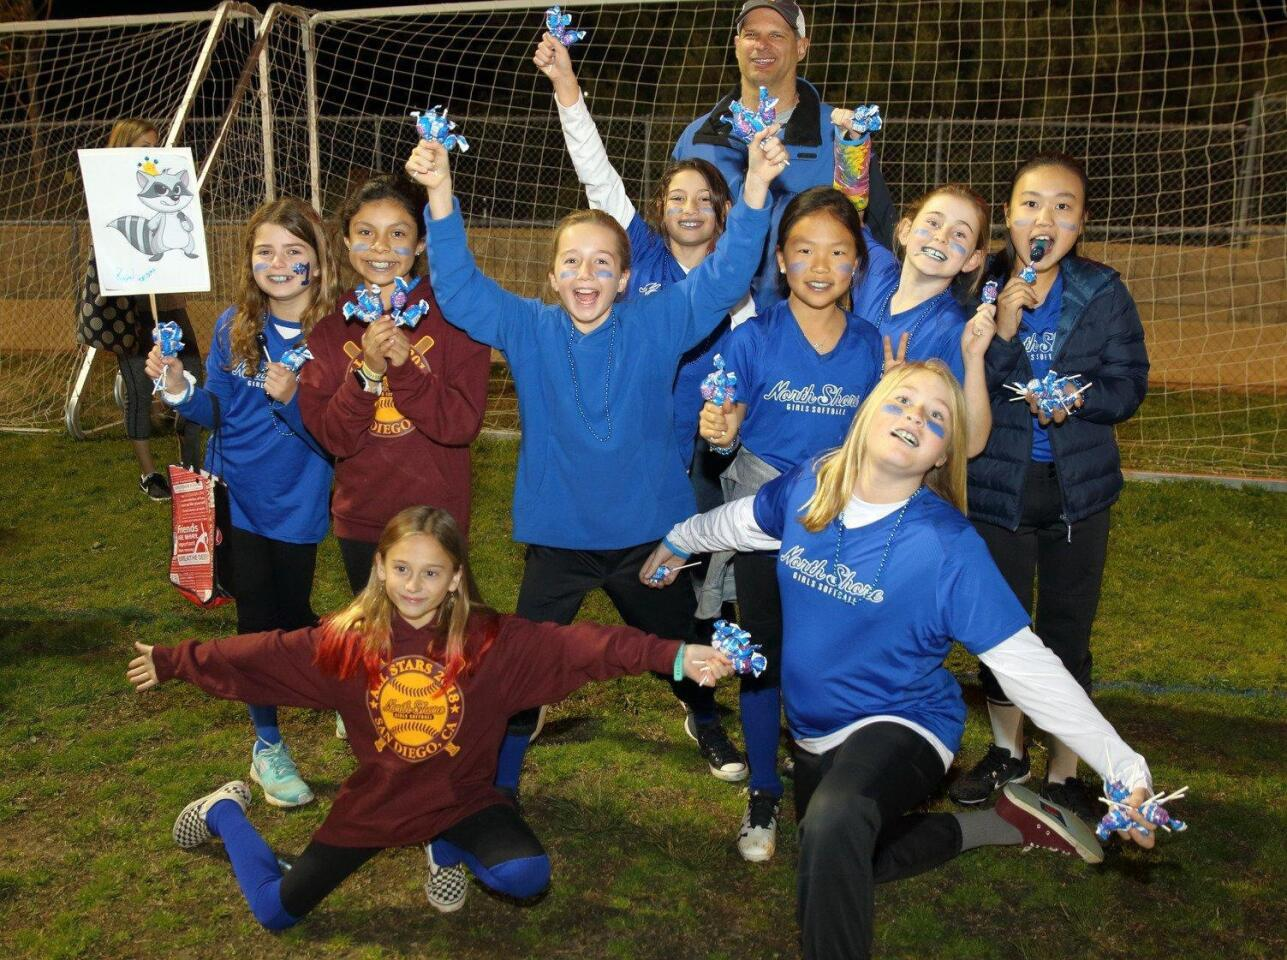 North Shore Girls Softball League Opening Night Celebration